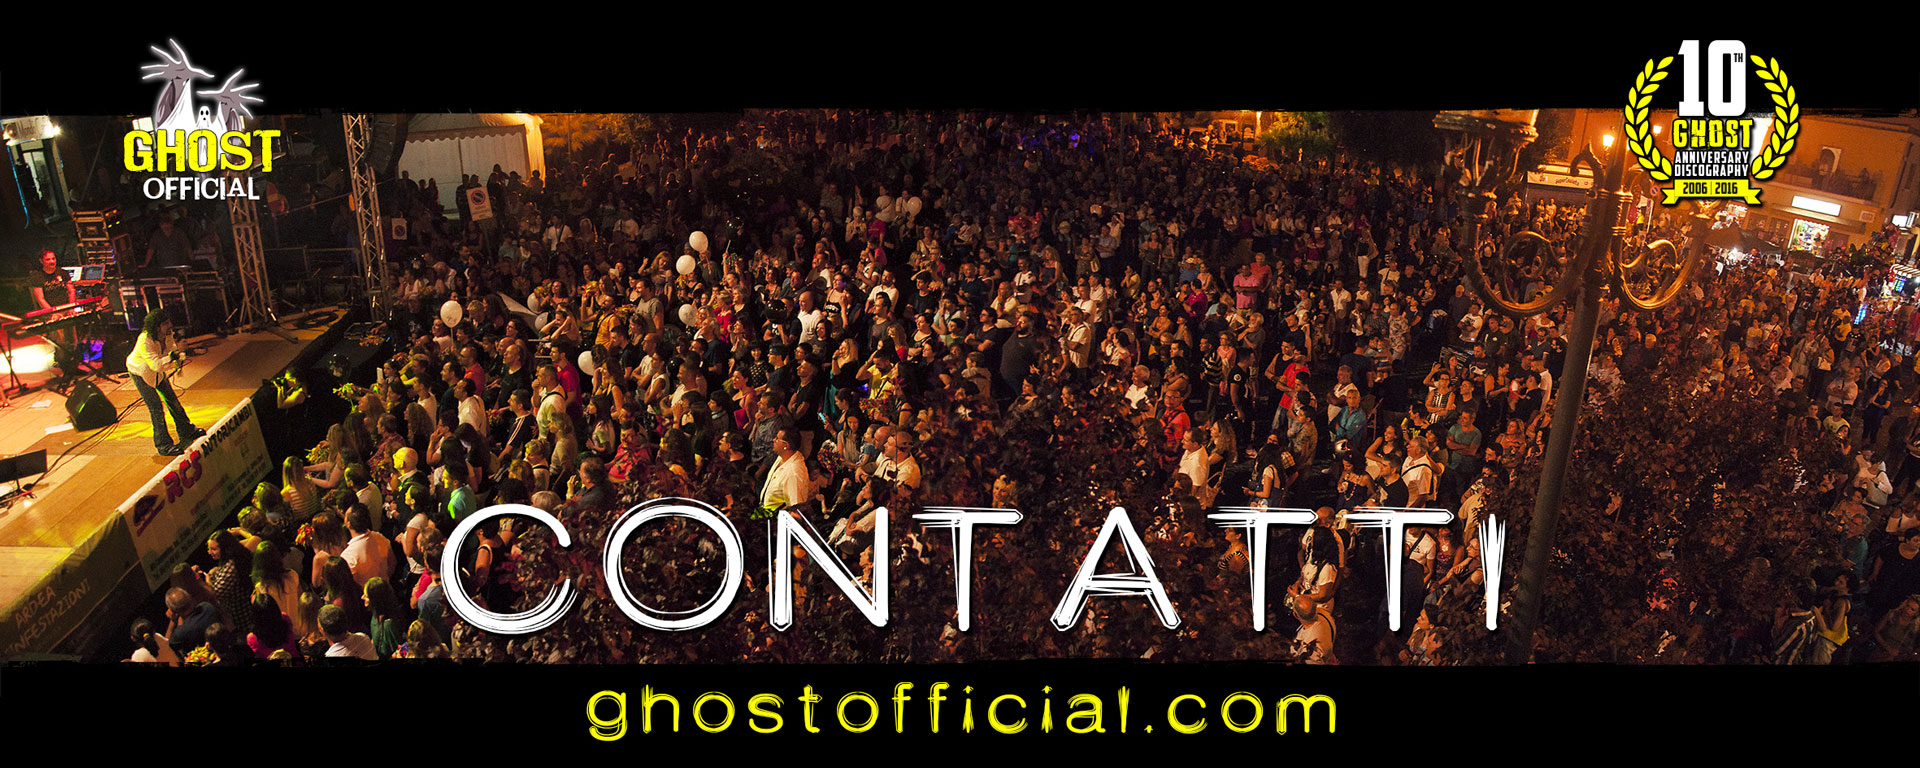 Ghost Official - Foto Live Concerto